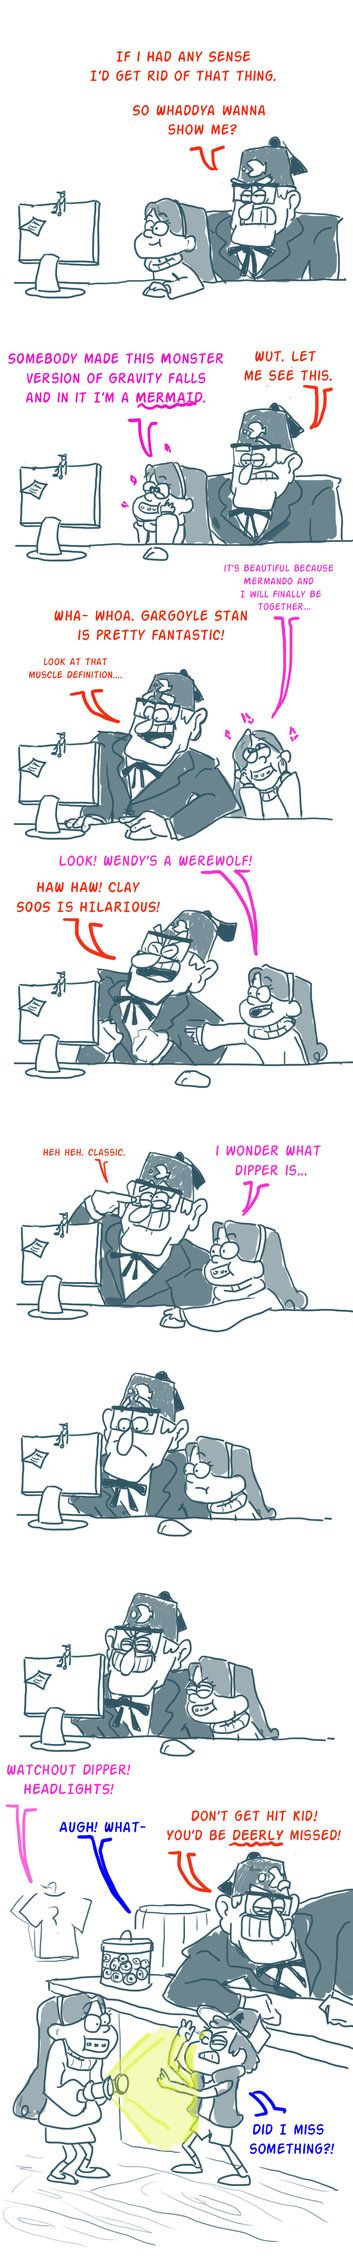 Mabel discovering the internet by Dravening on DeviantArt